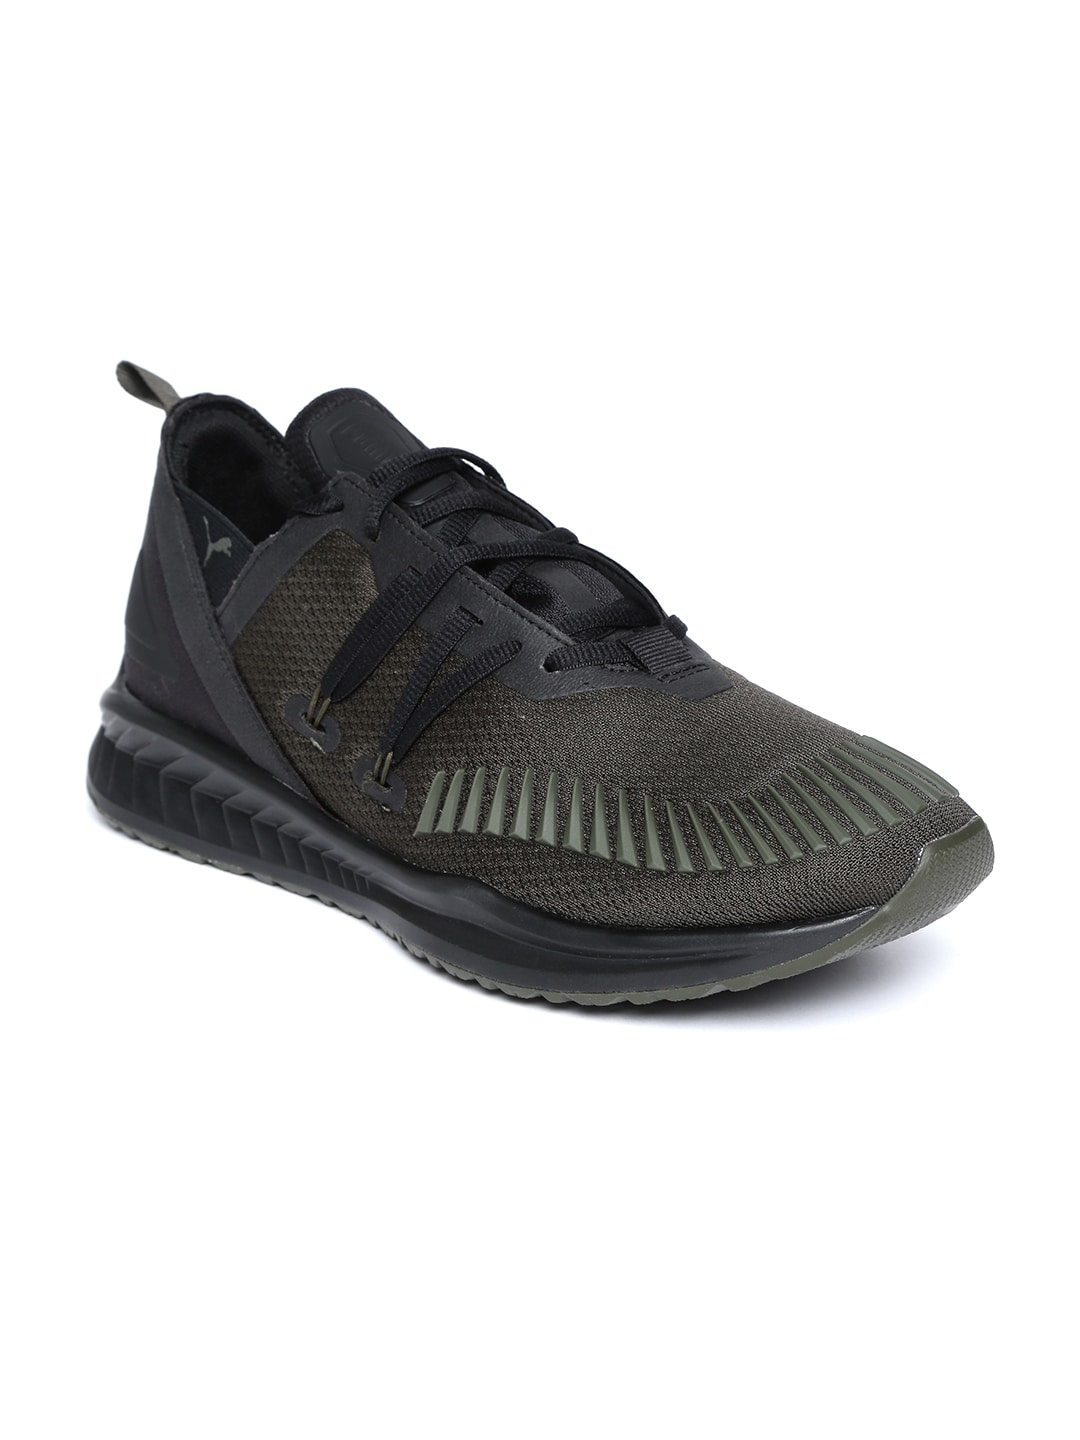 67fc2f0bd242 Puma Shoes - Buy Puma Shoes for Men   Women Online in India